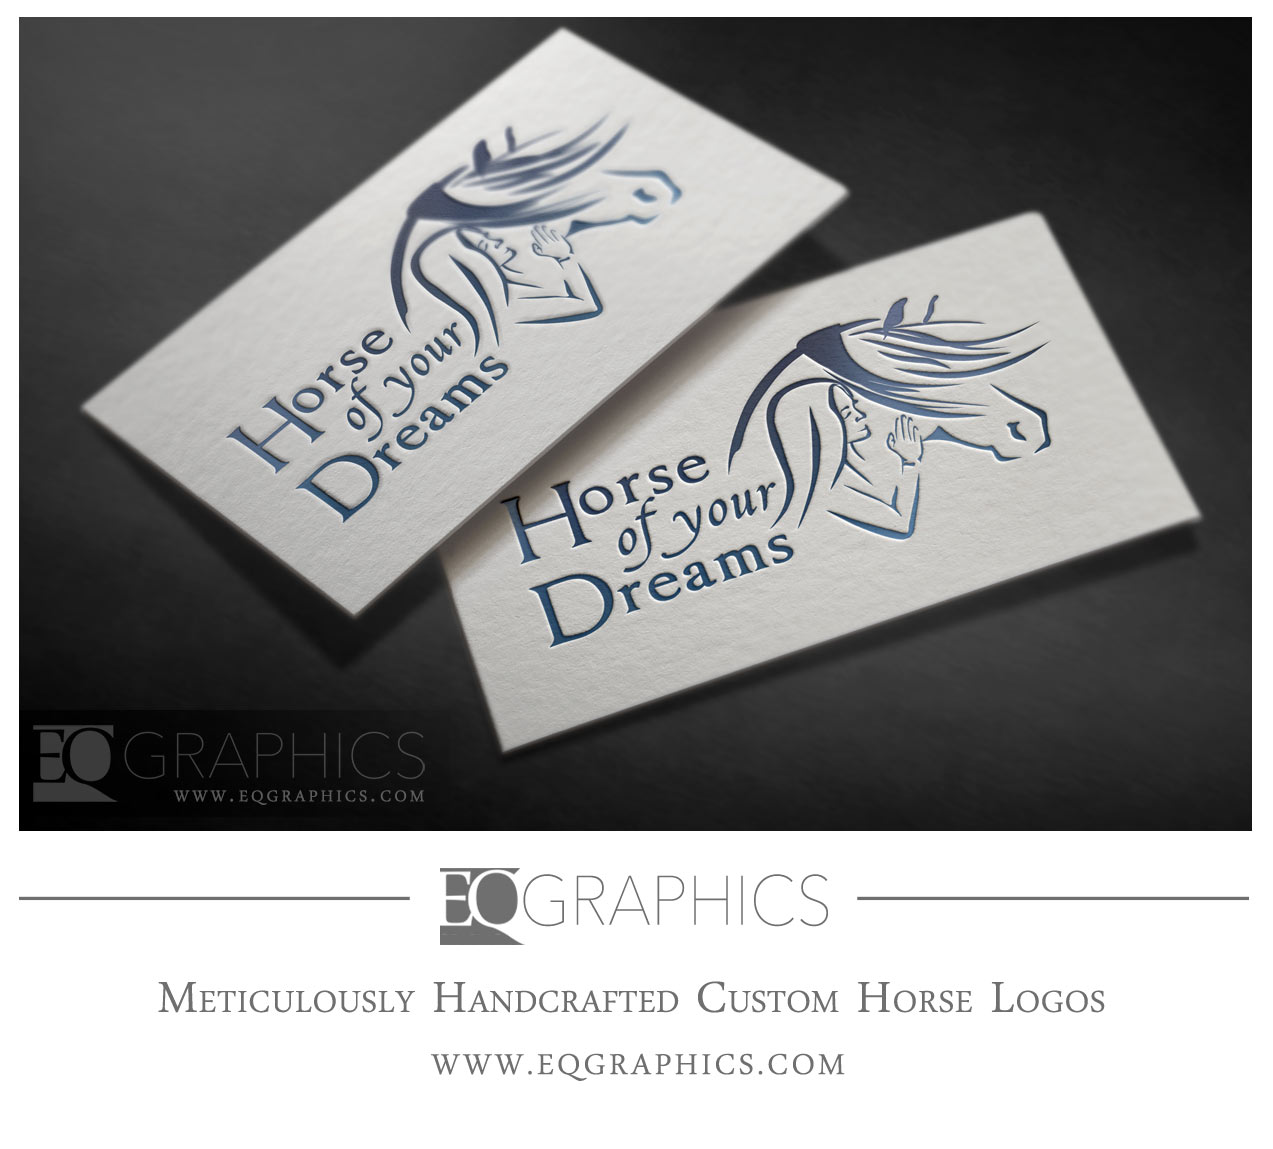 Horse of your Dreams Logo Person Woman Wind Mane Blowing Logo Design by EQ Graphics Designer Equine Logos